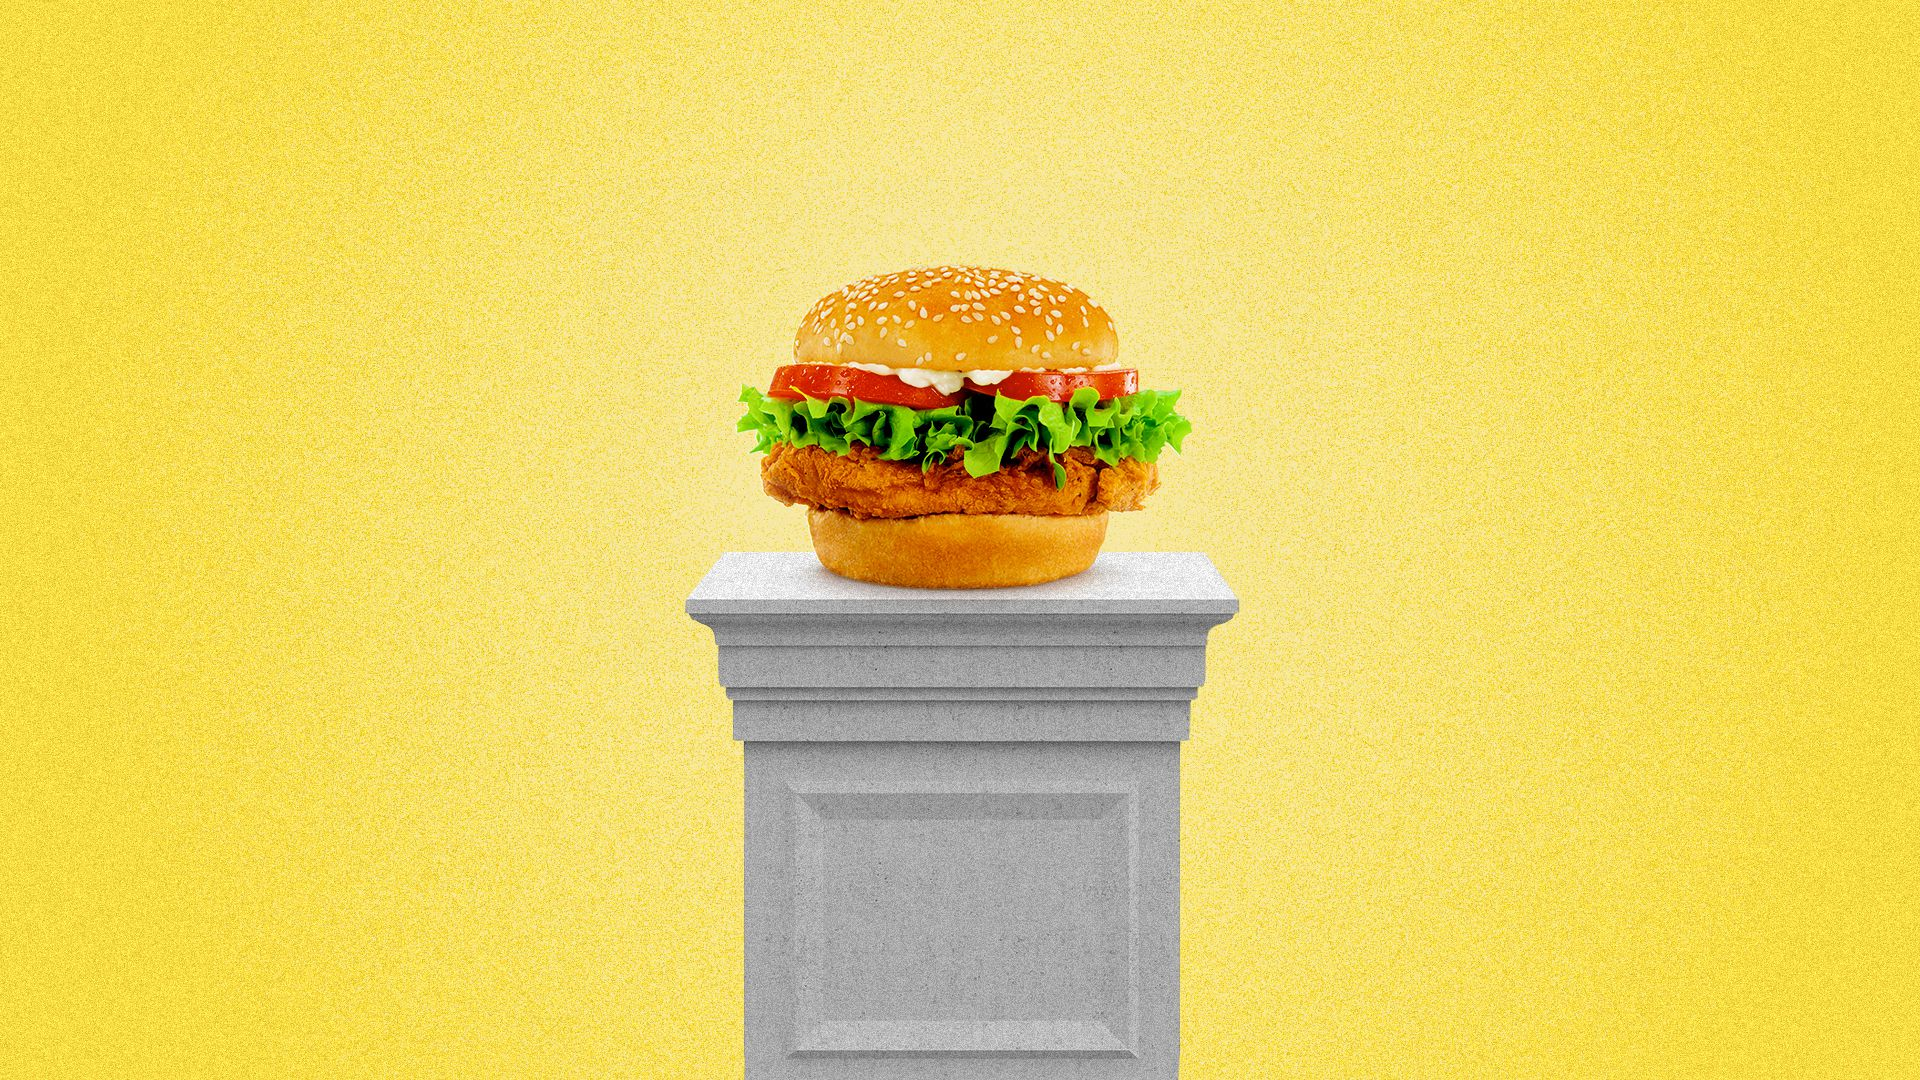 Illustration of a chicken sandwich illuminated on a pedestal.